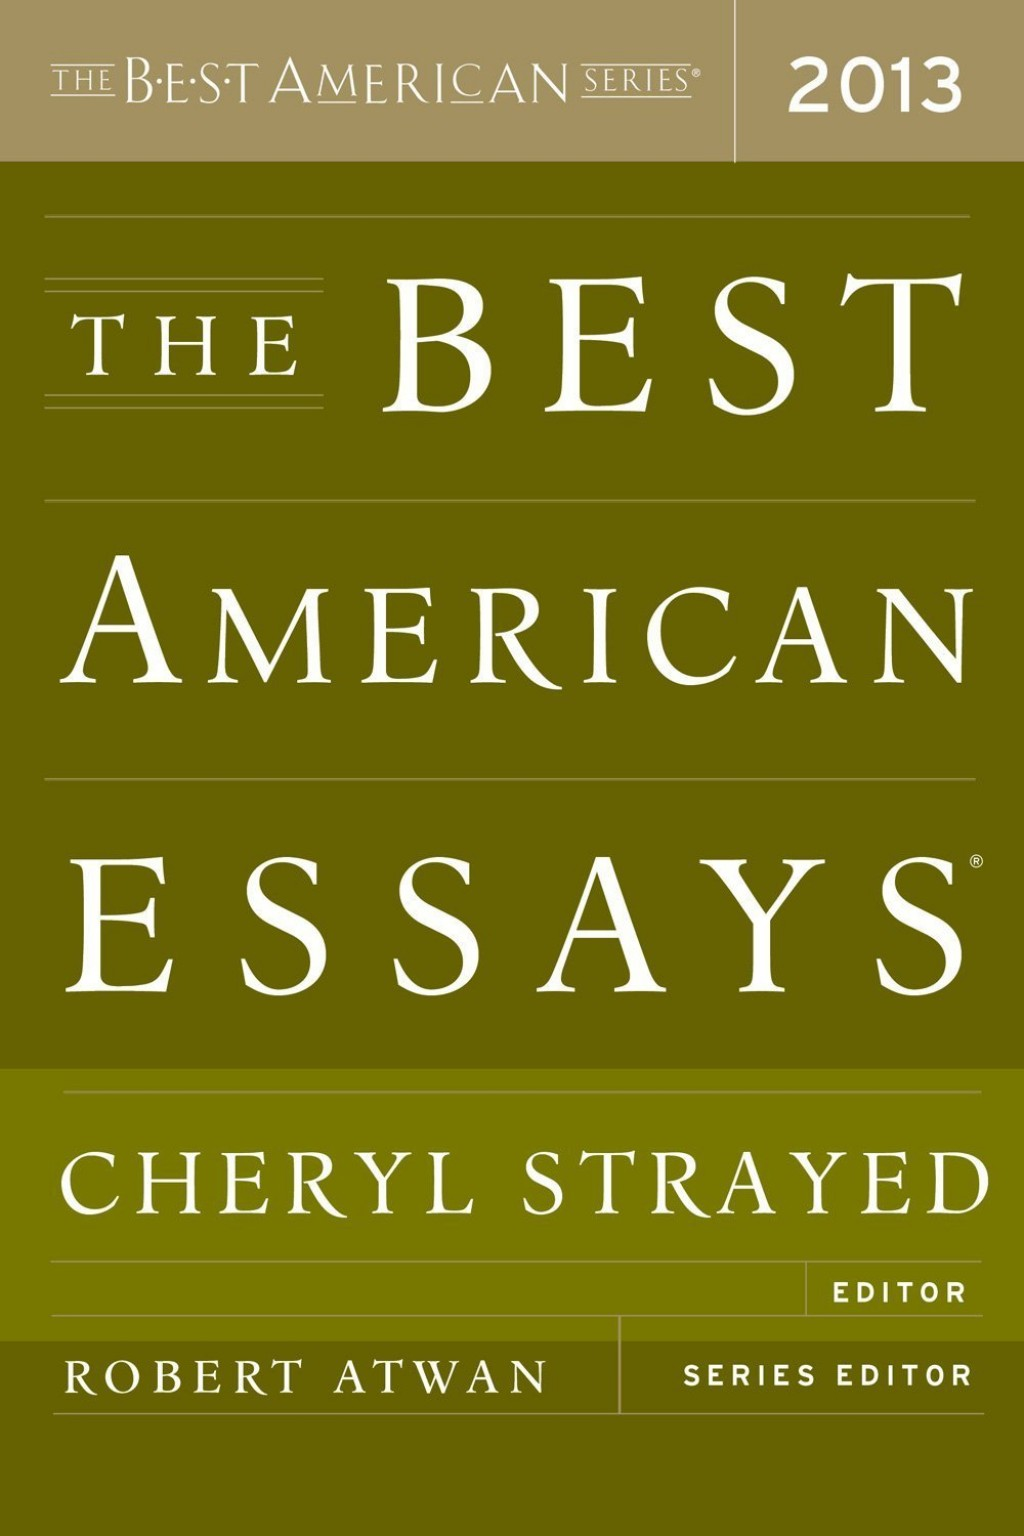 004 The Best American Essays Essay Wonderful 2018 Pdf 2017 Table Of Contents 2015 Free Large